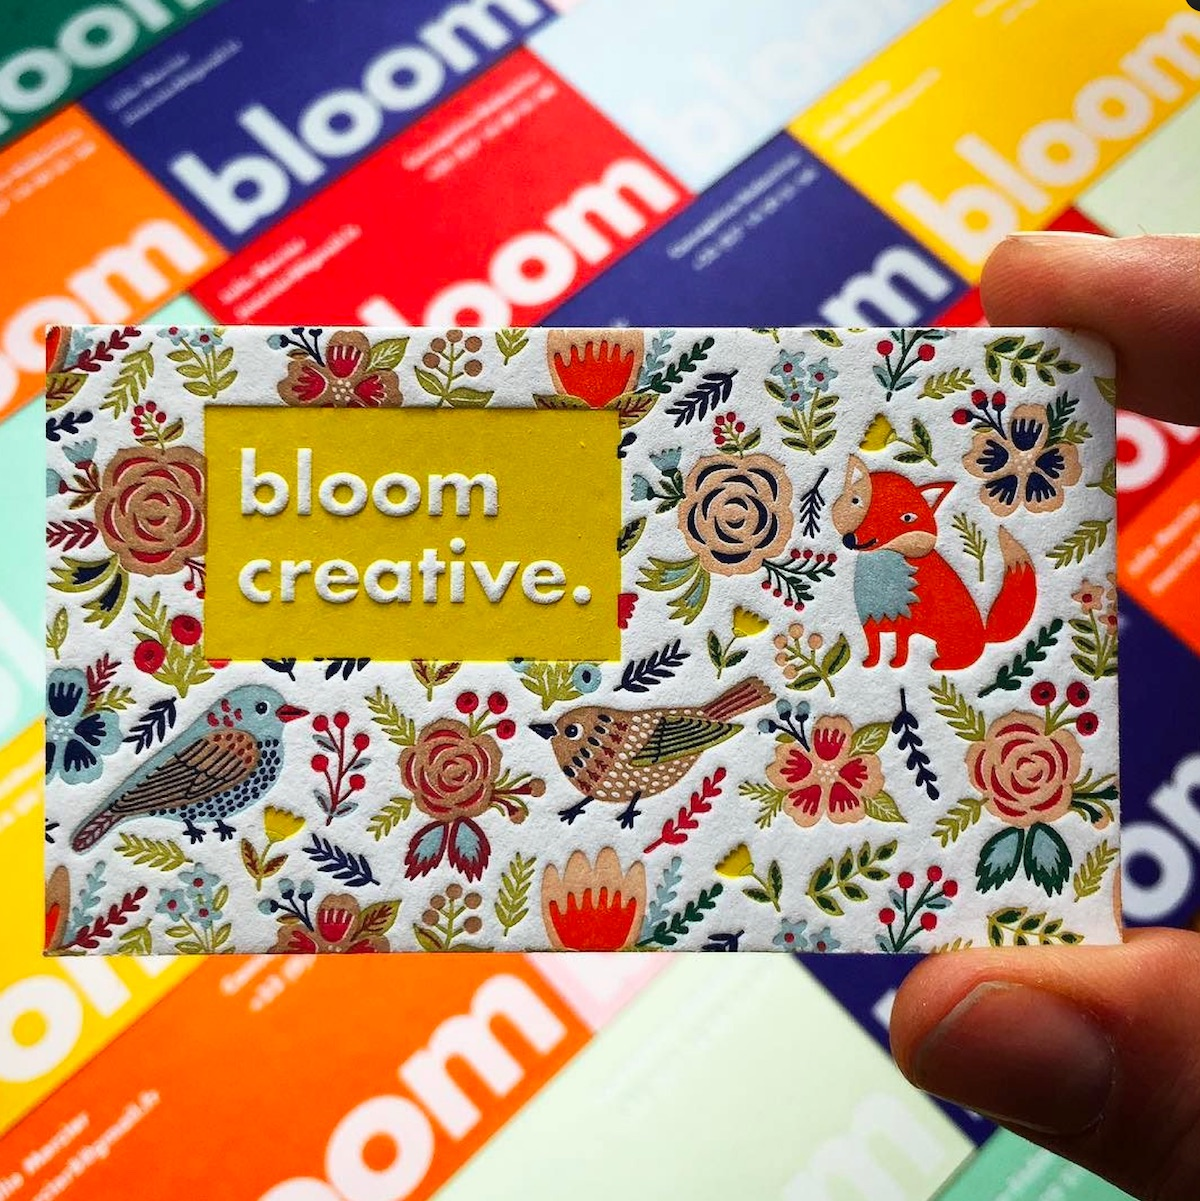 bloom creative business card